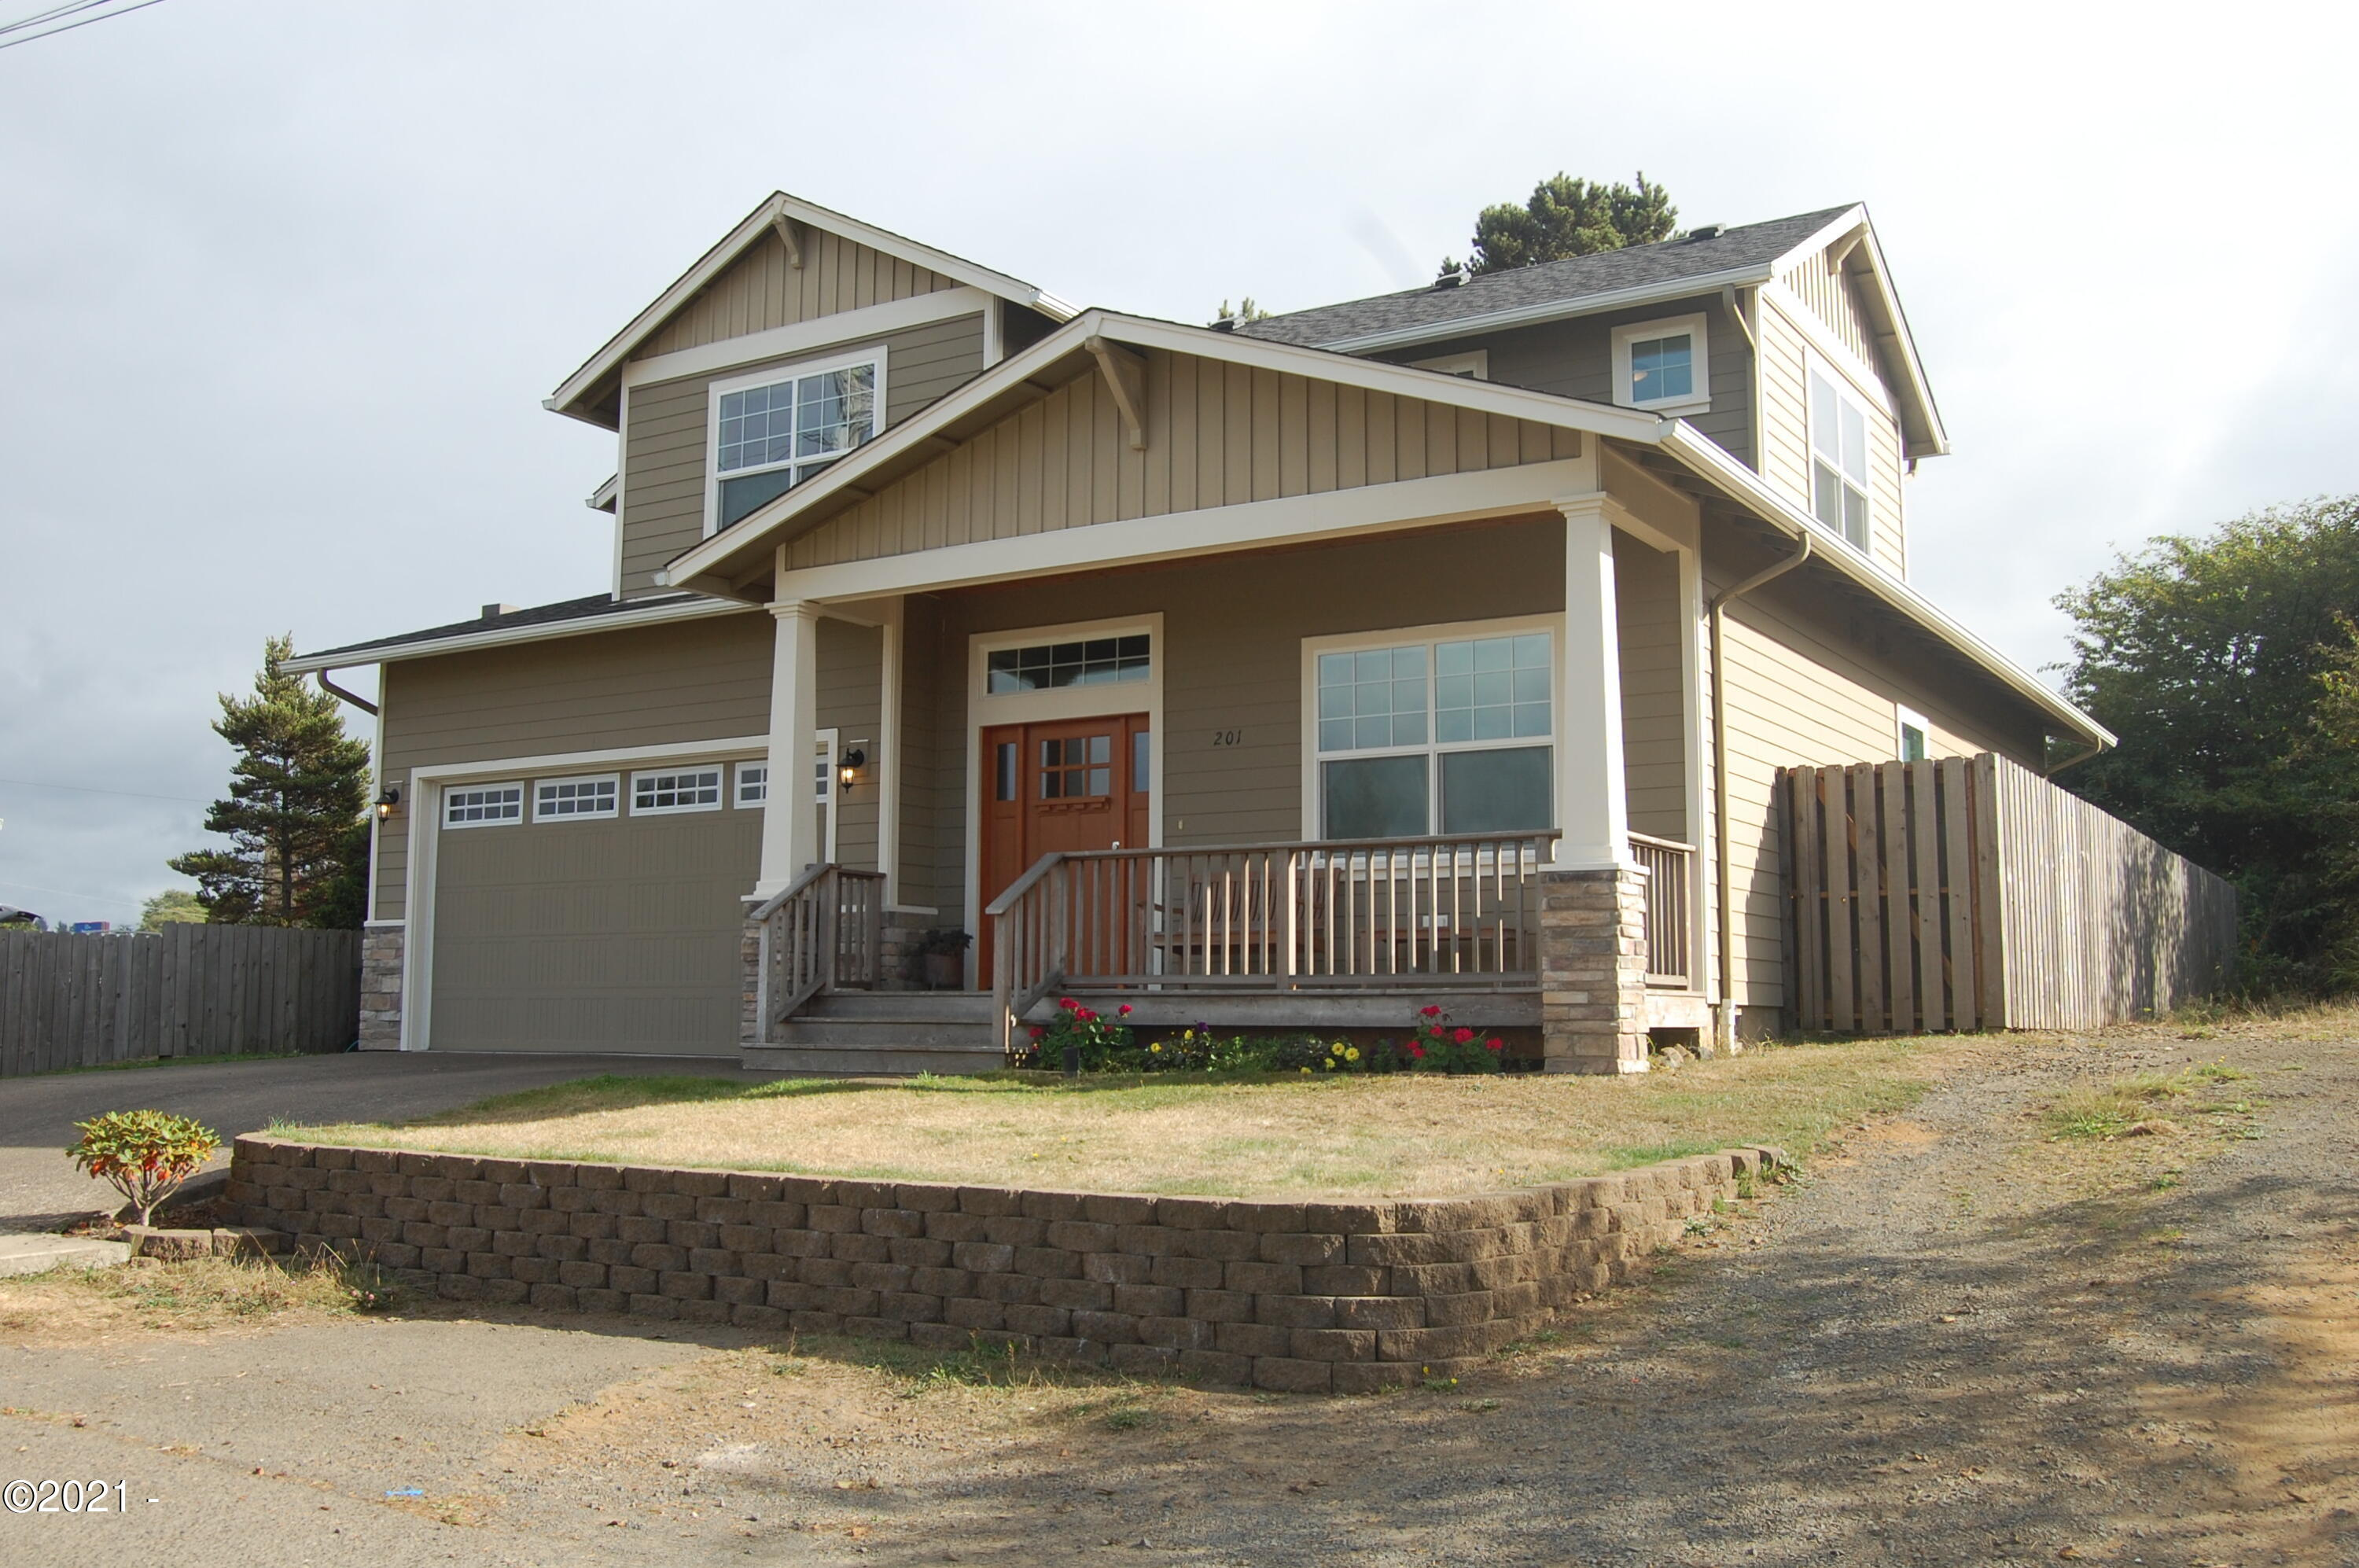 201 NW 8th St, Newport, OR 97365 - Front of house